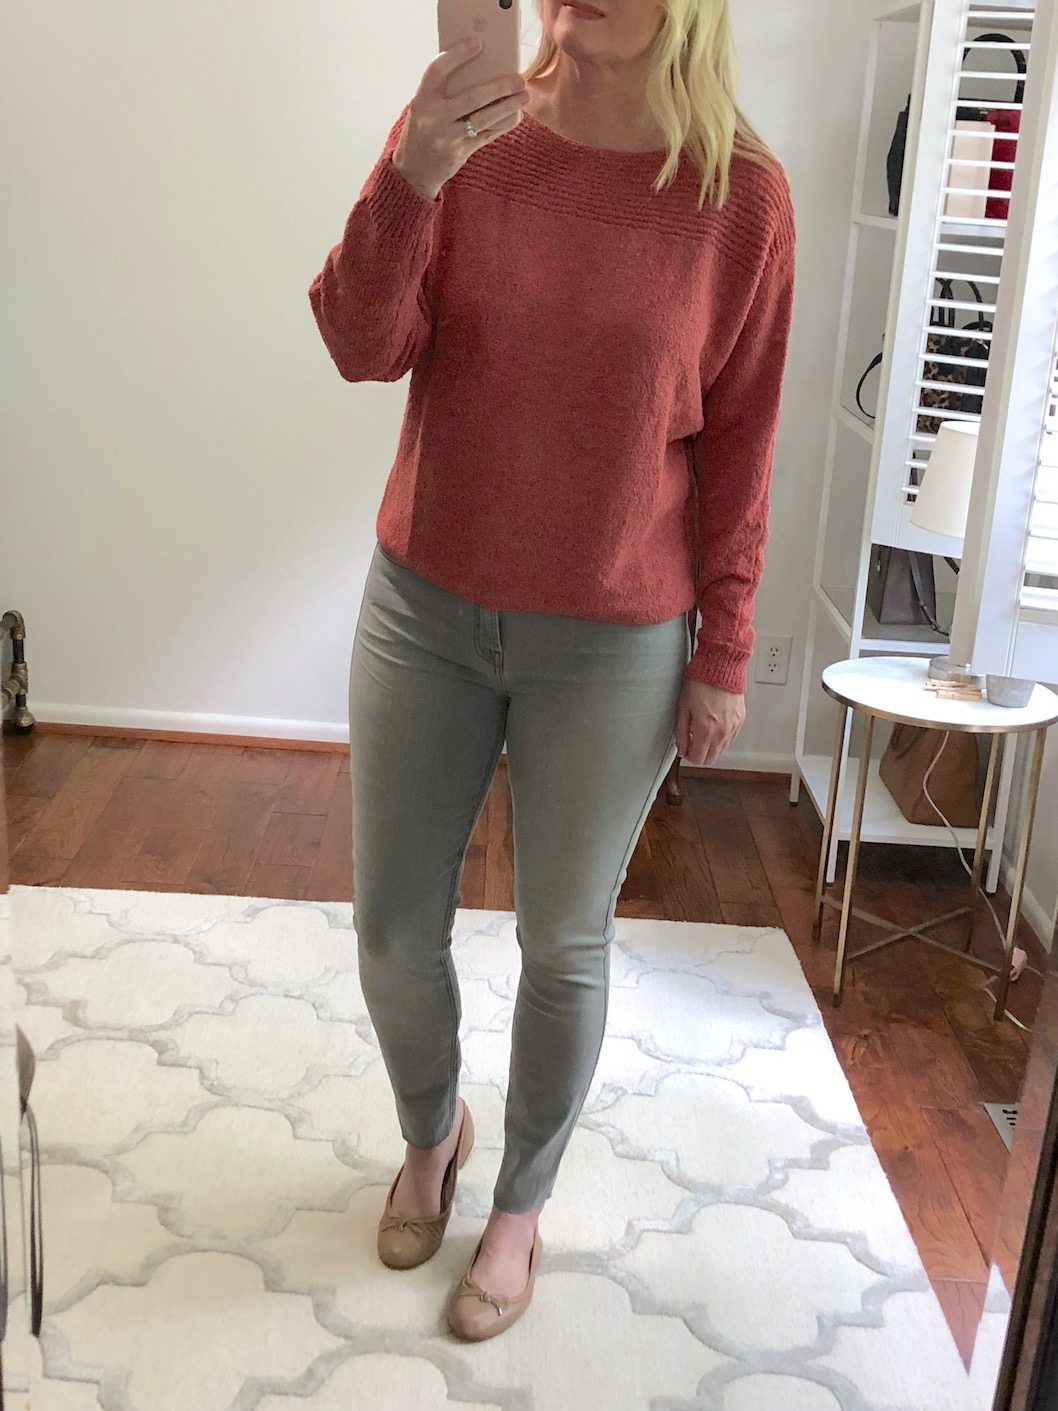 Nordstrom Anniversary Sale Try-On - Calson Dolman Sleeve Sweater and 7 For All Mankind Gray Jeans